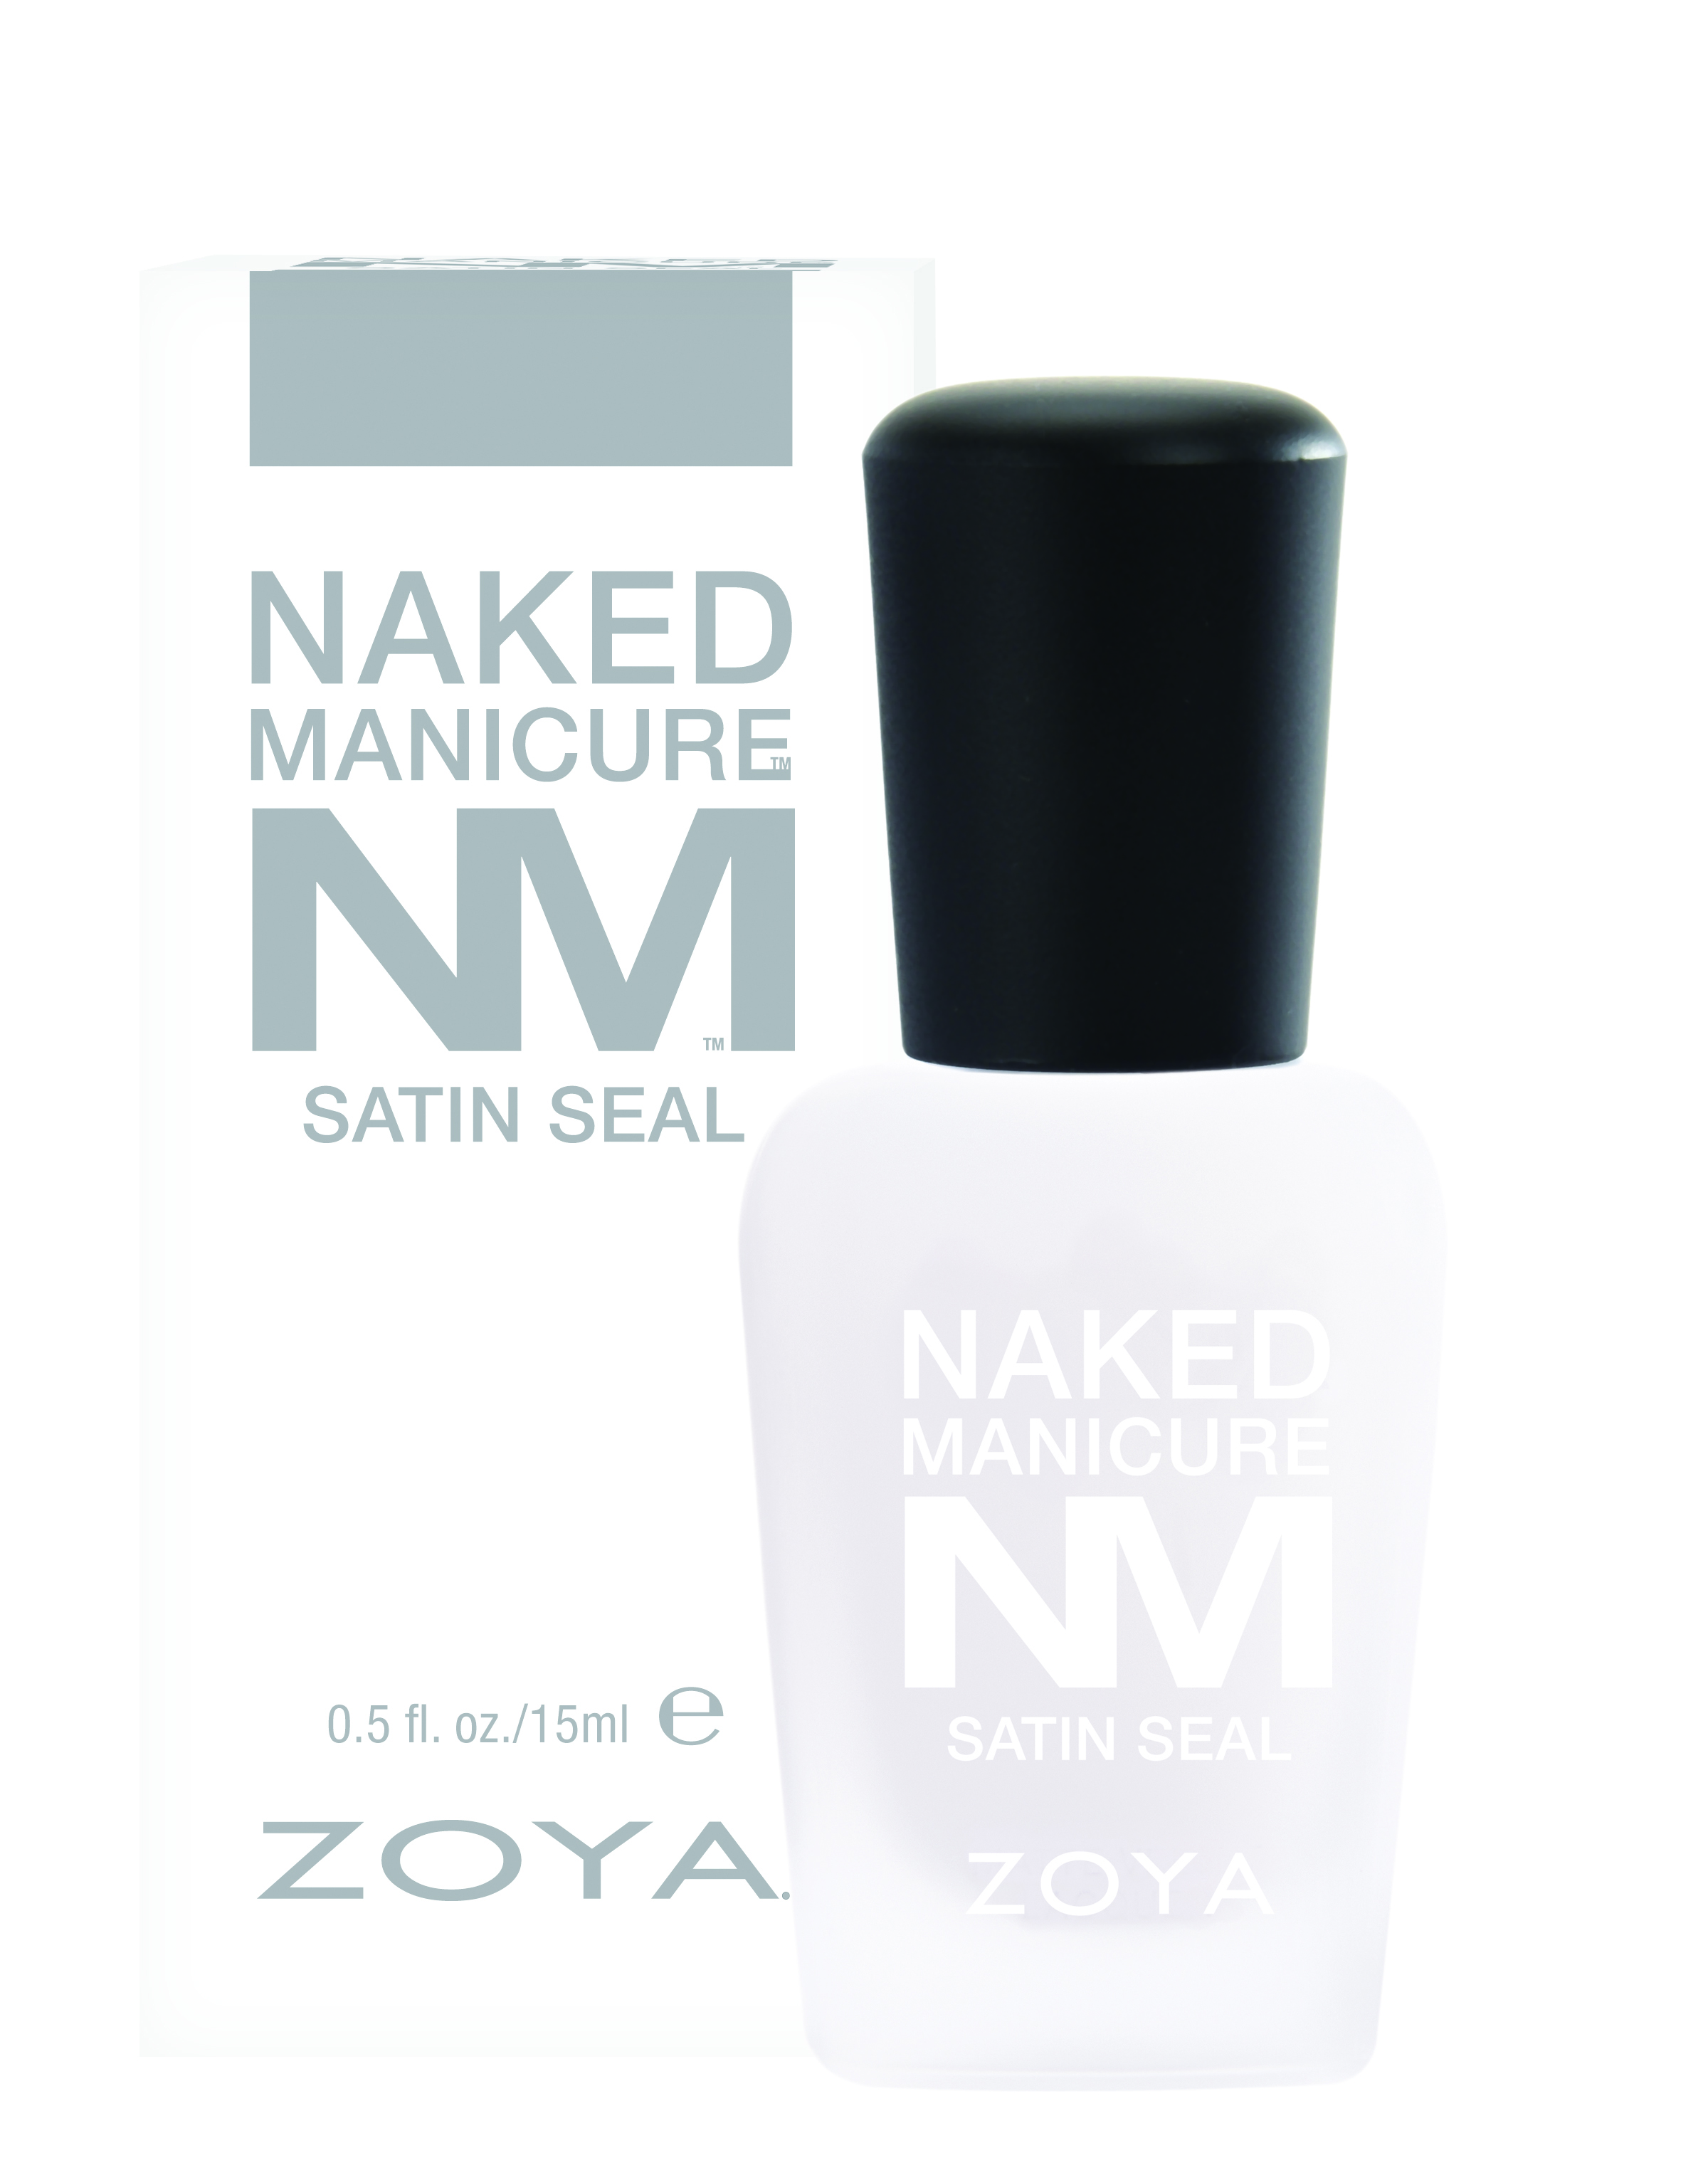 Naked Manicure Satin Seal thumbnail